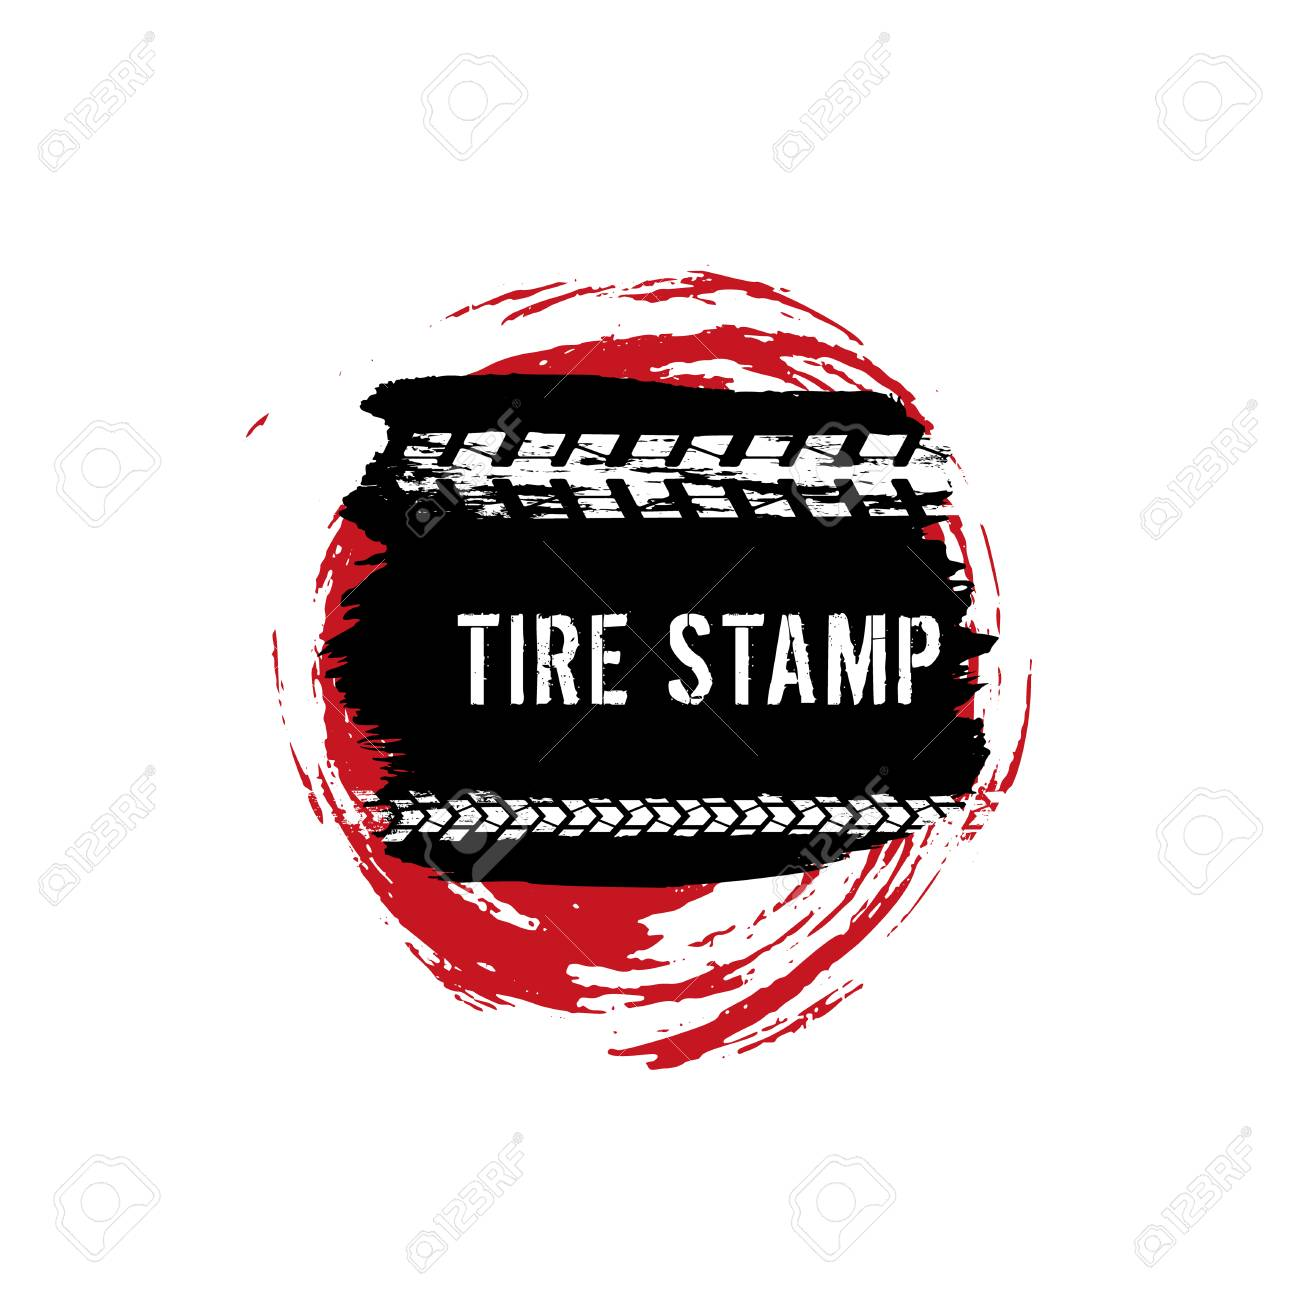 Grunge Off Road Post And Quality Stamp Automotive Element Useful Royalty Free Cliparts Vectors And Stock Illustration Image 91375272